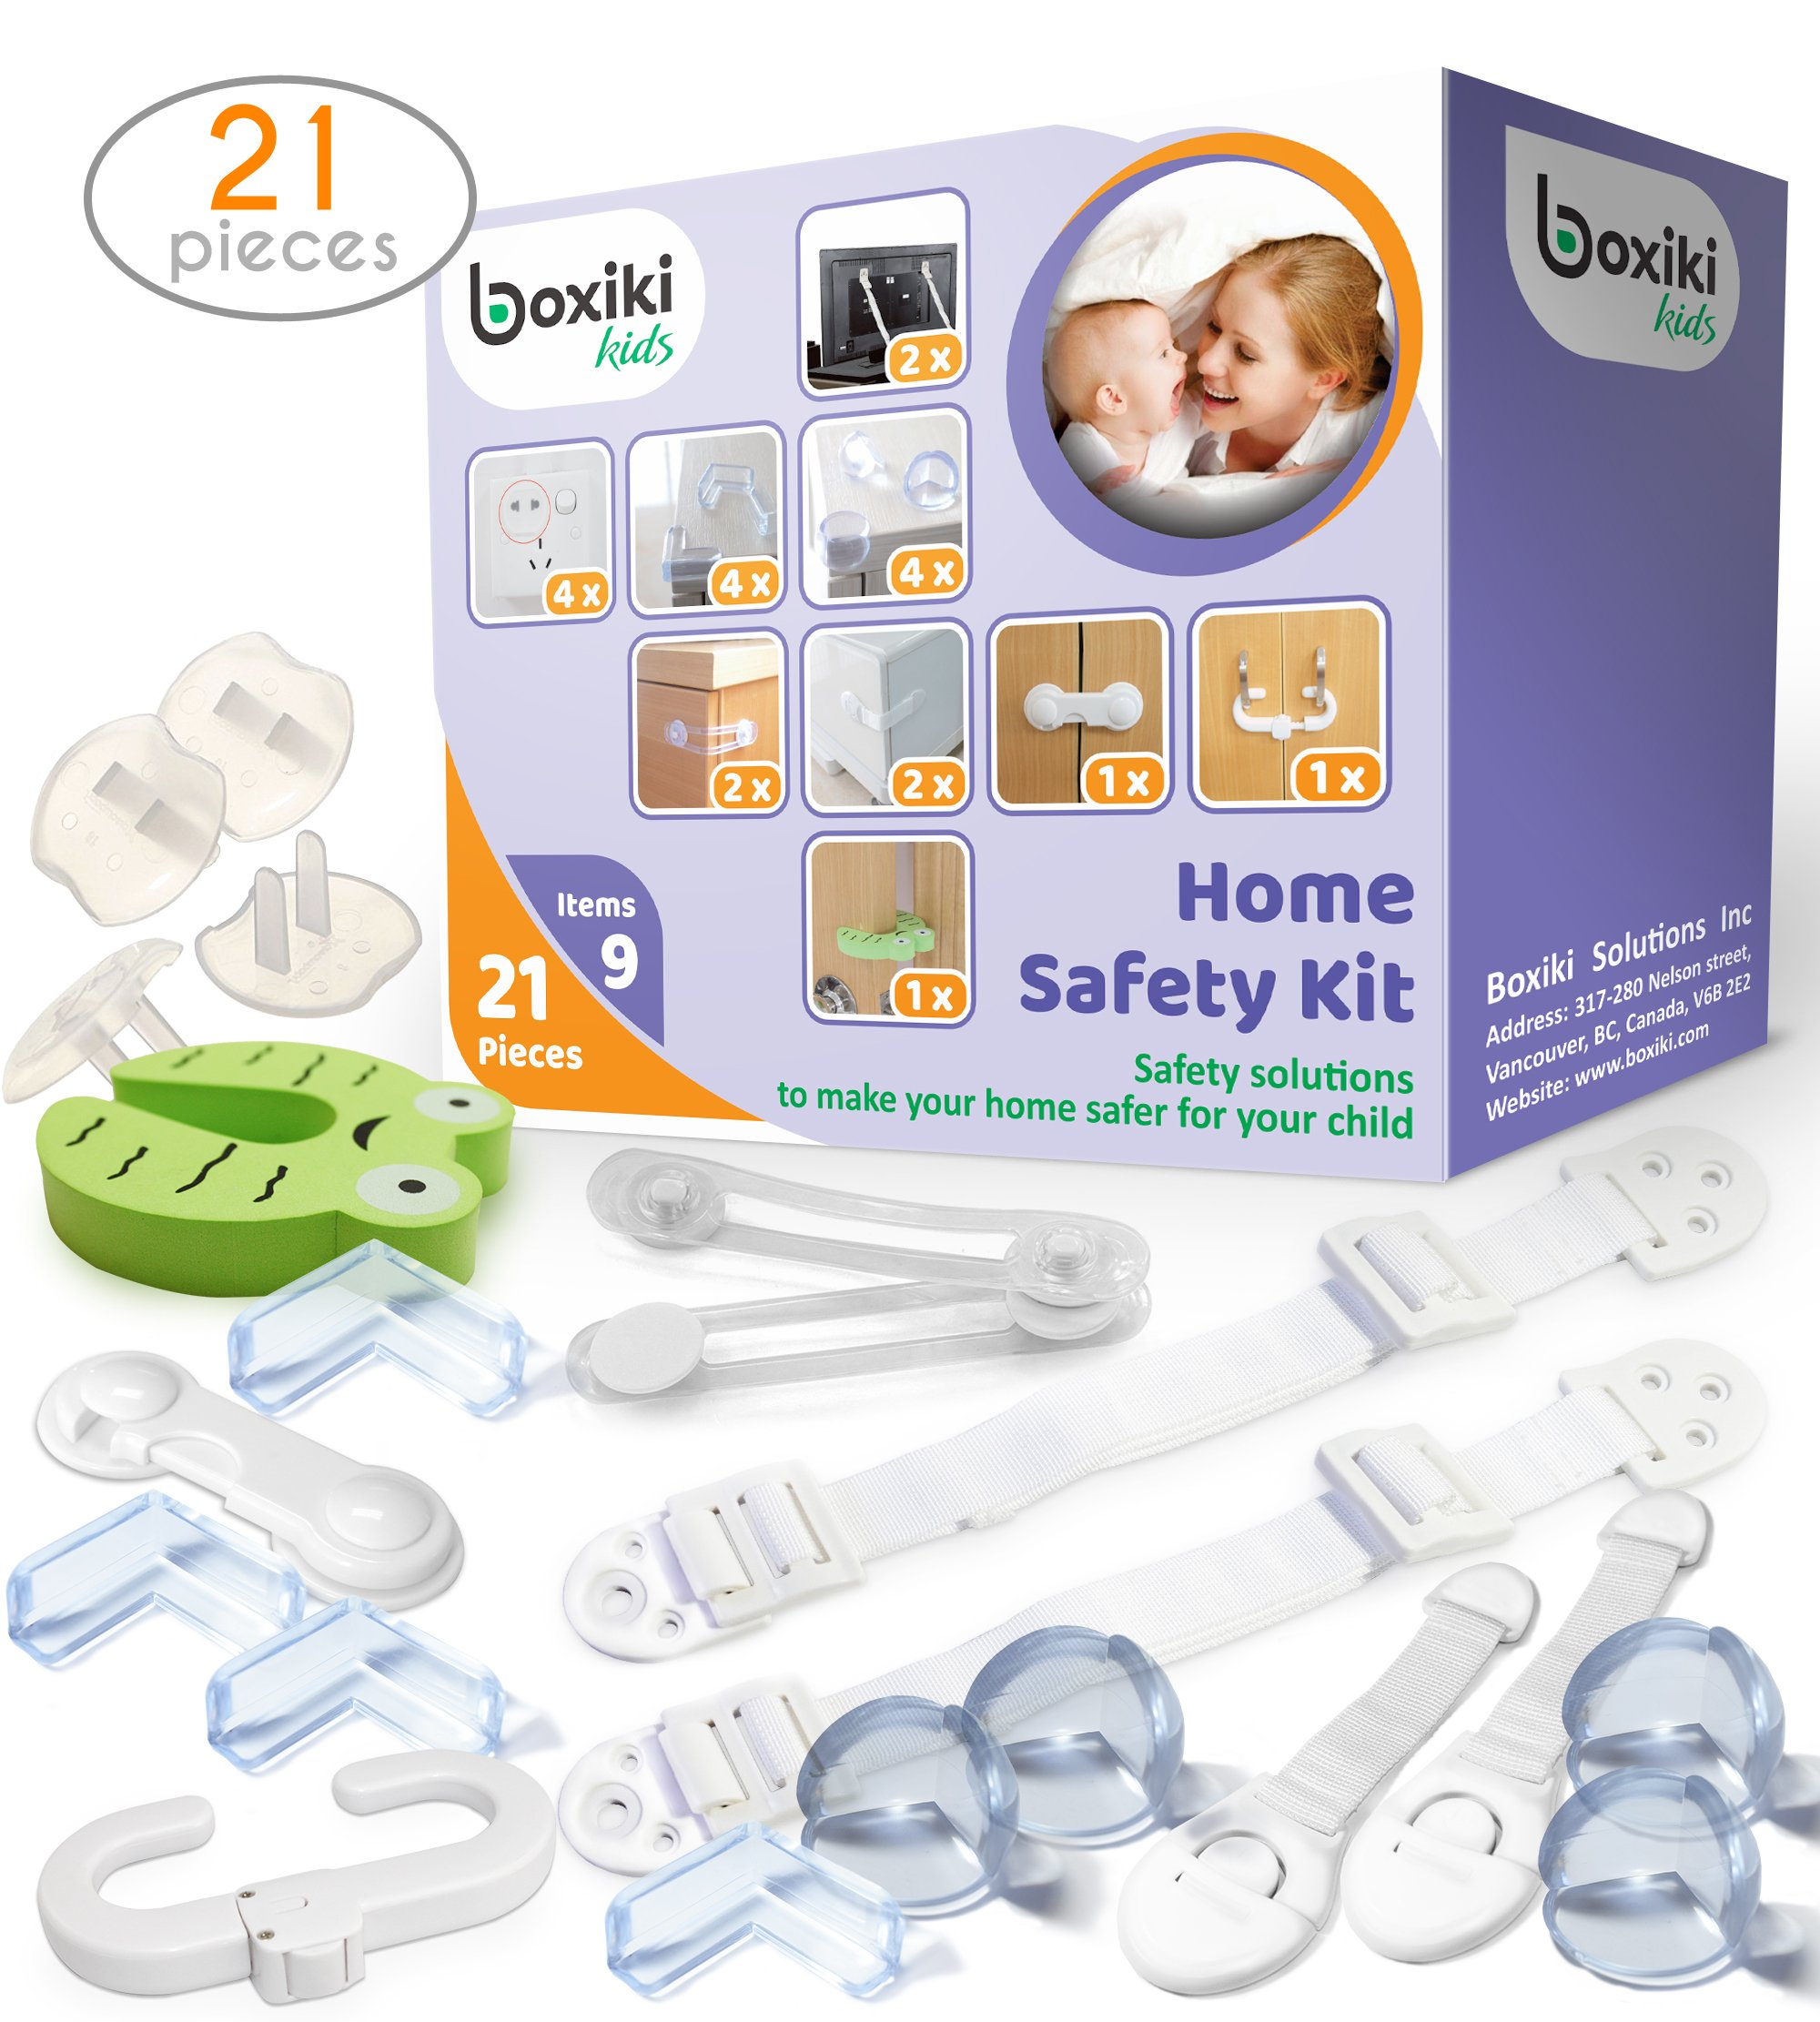 Child Safety Kit (21 Pieces) by Boxiki Kids. 8 Corner Protectors, 4 Plug Protectors, 2 Anti-Tip Furniture Straps, 1 Door Stopper and 6 Child Safety Locks. Full Baby Proofing Kit